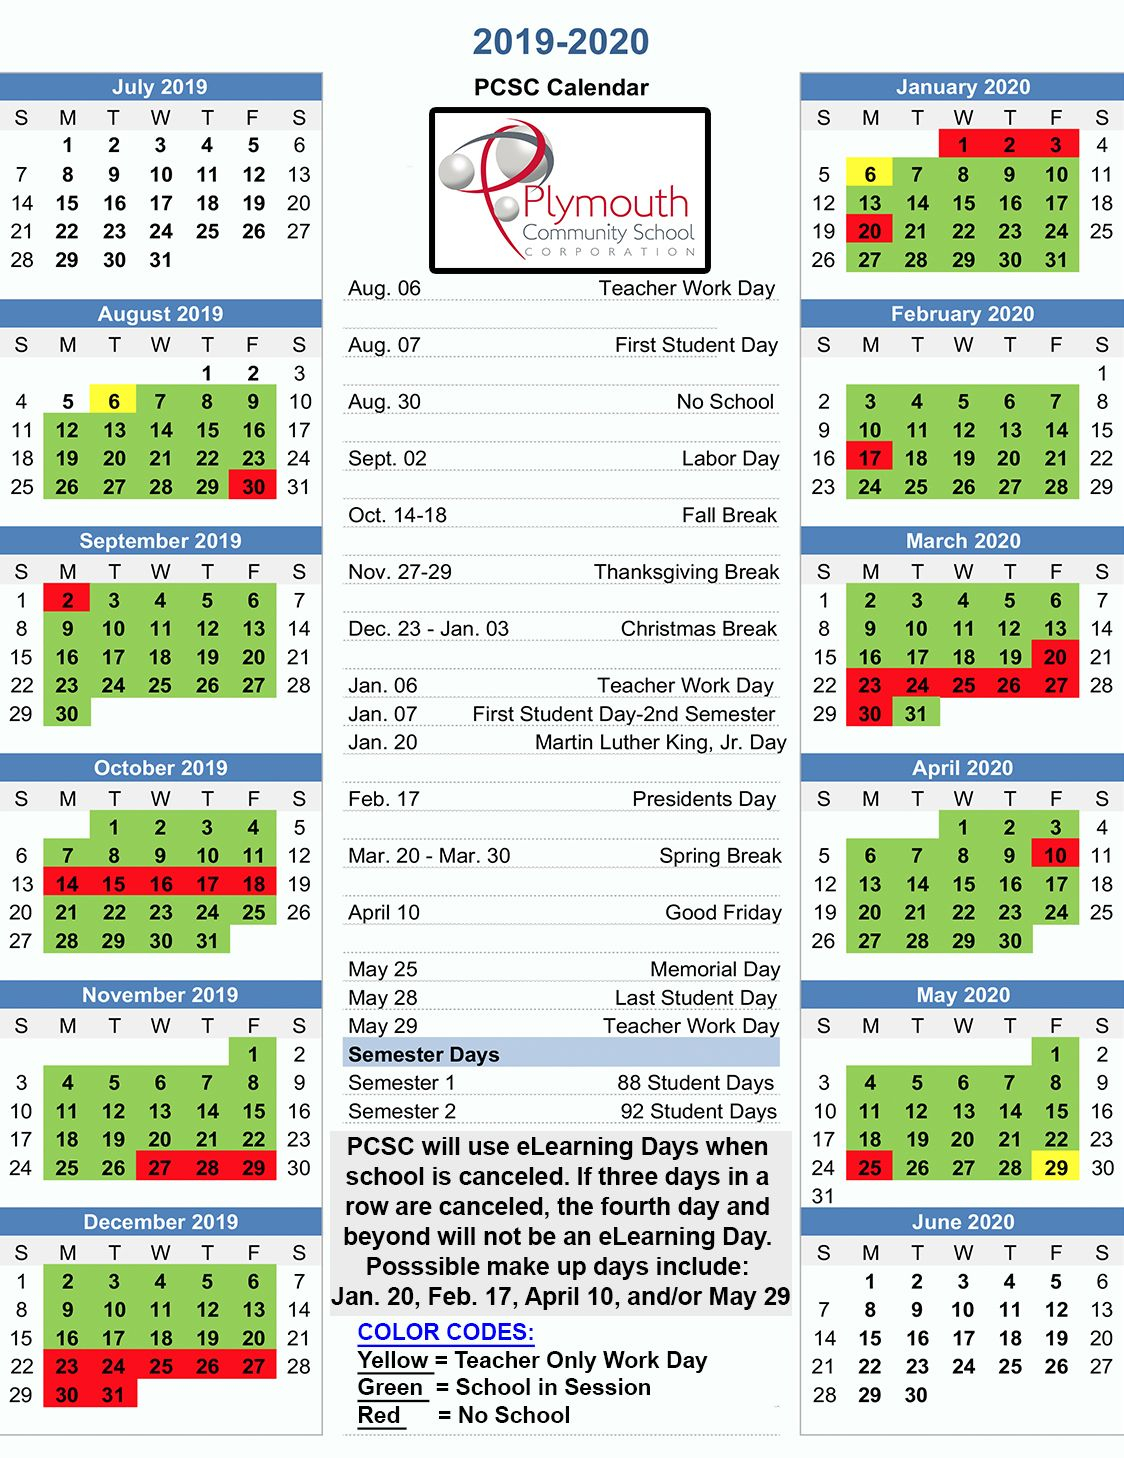 Download A Copy Of The Recently Approved 2019 2020 Pcsc Regarding Palm Beach State School Calendar